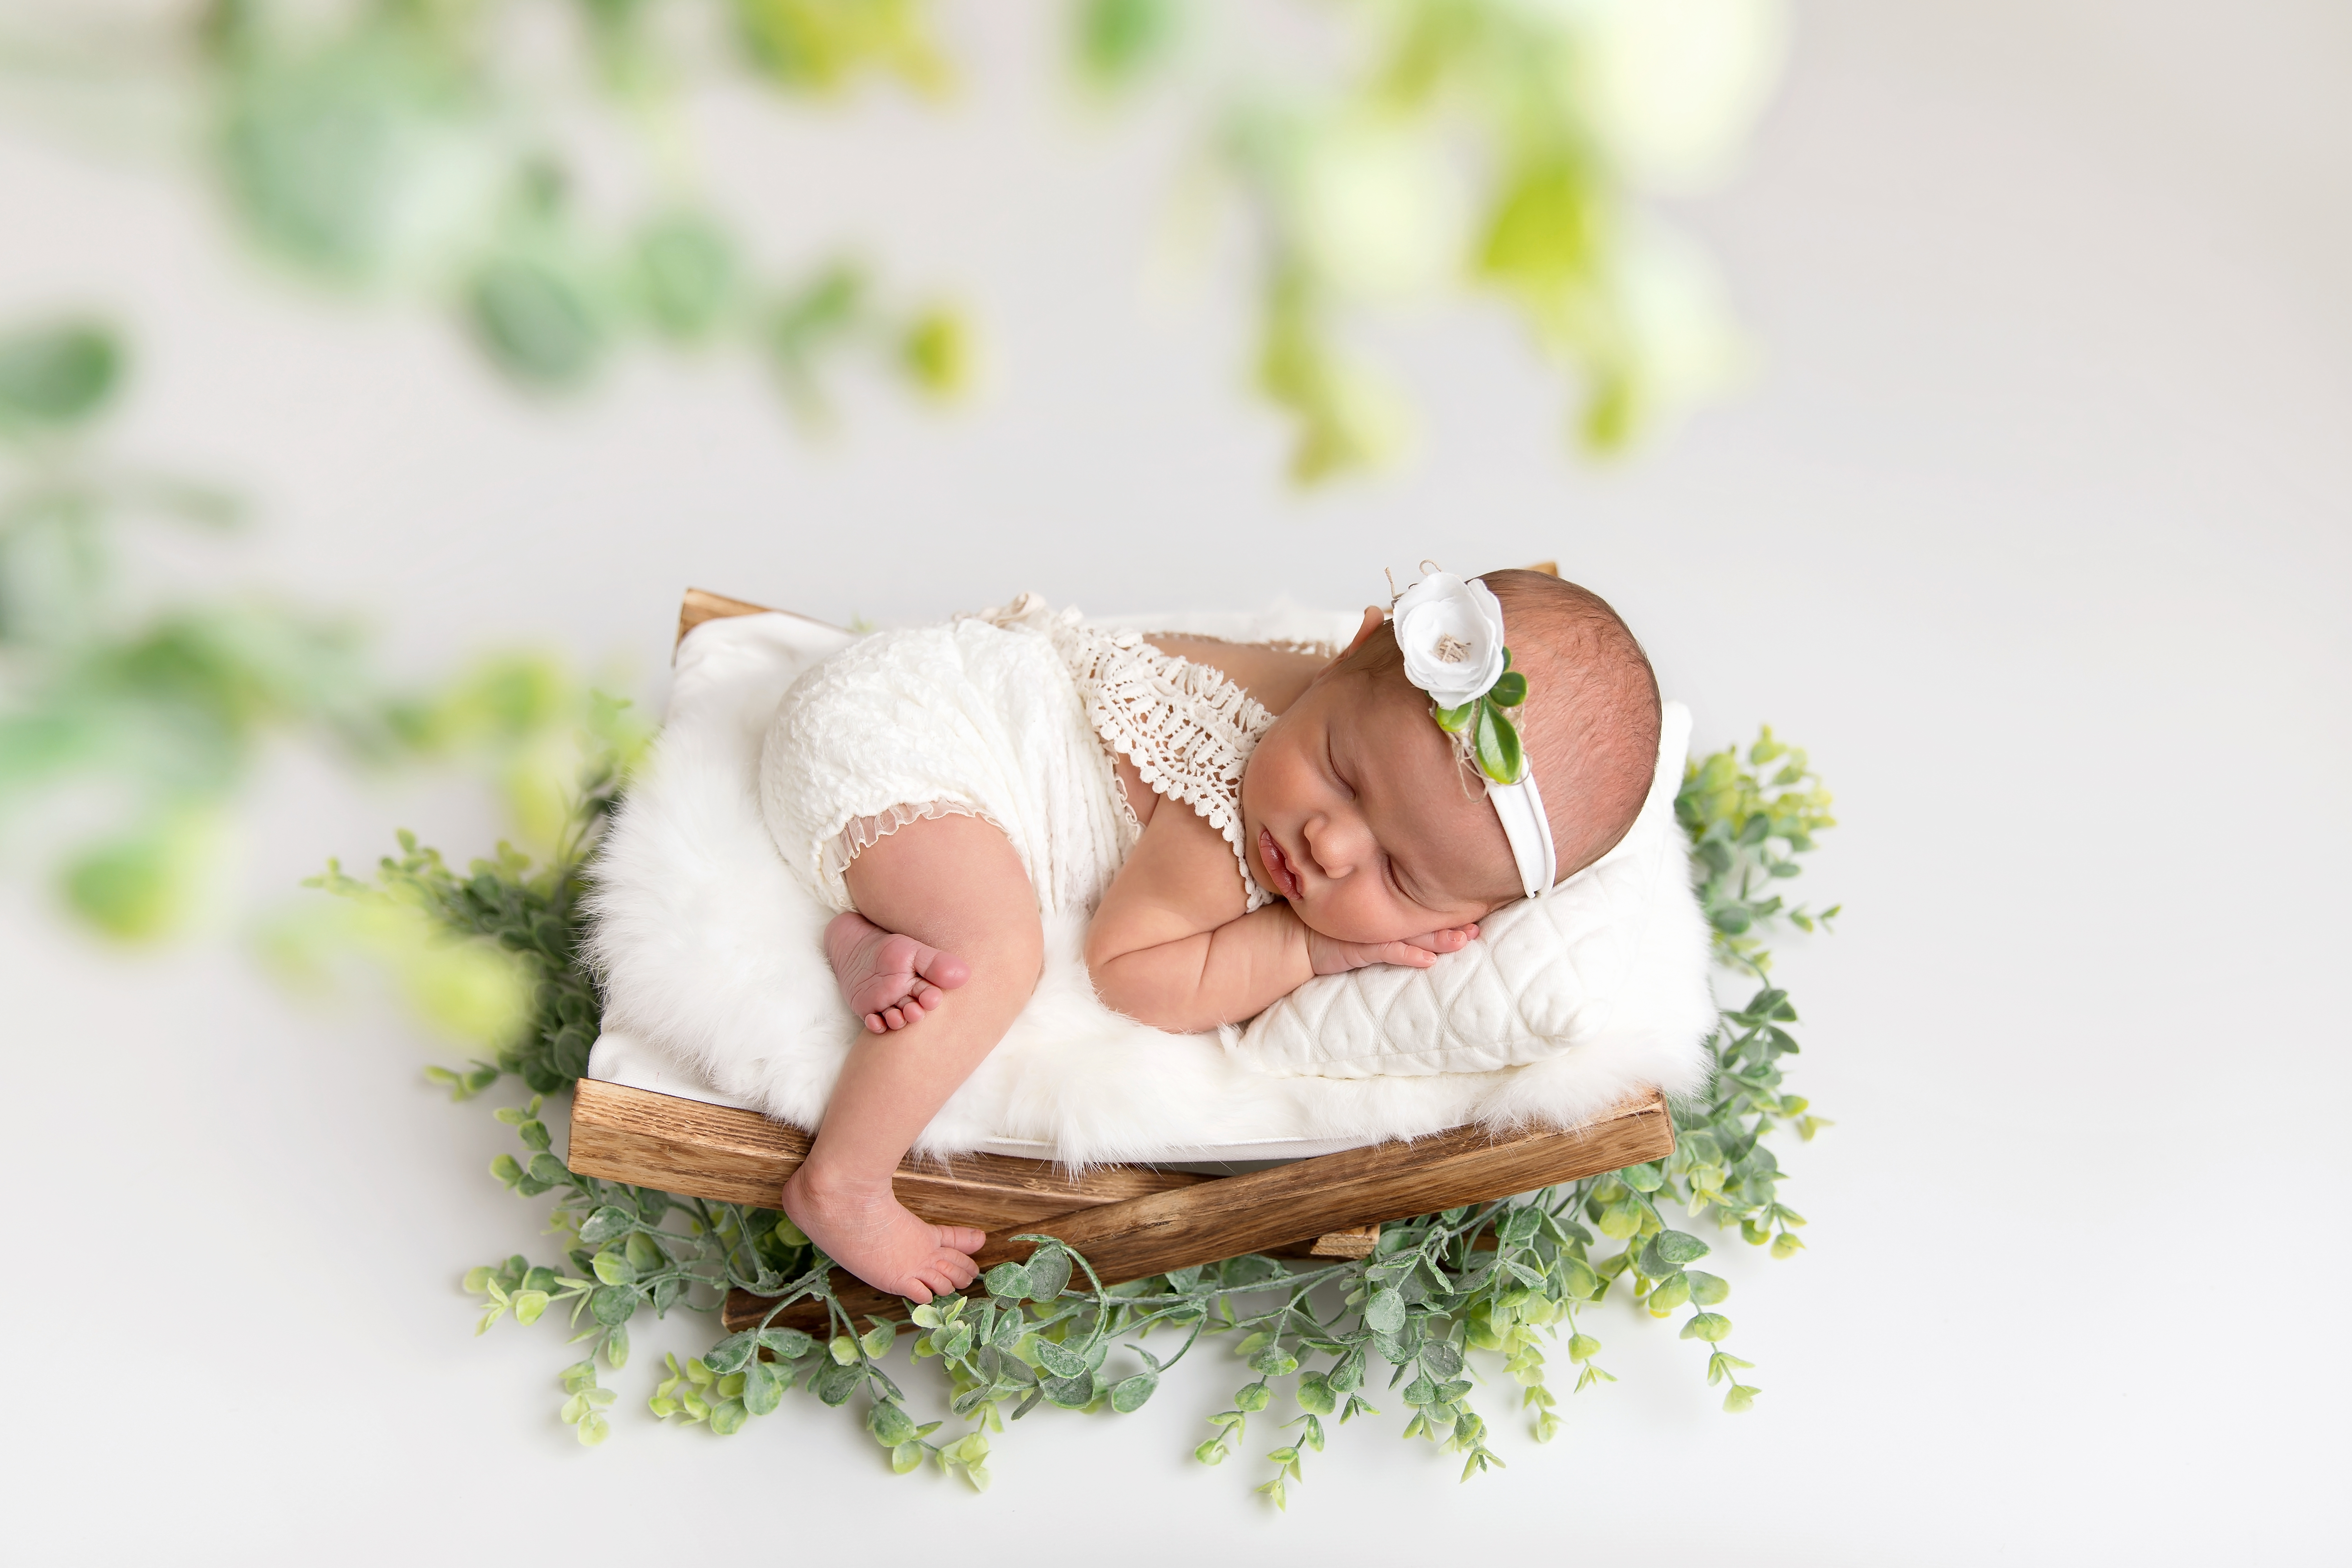 Newborn photographer Shropshire